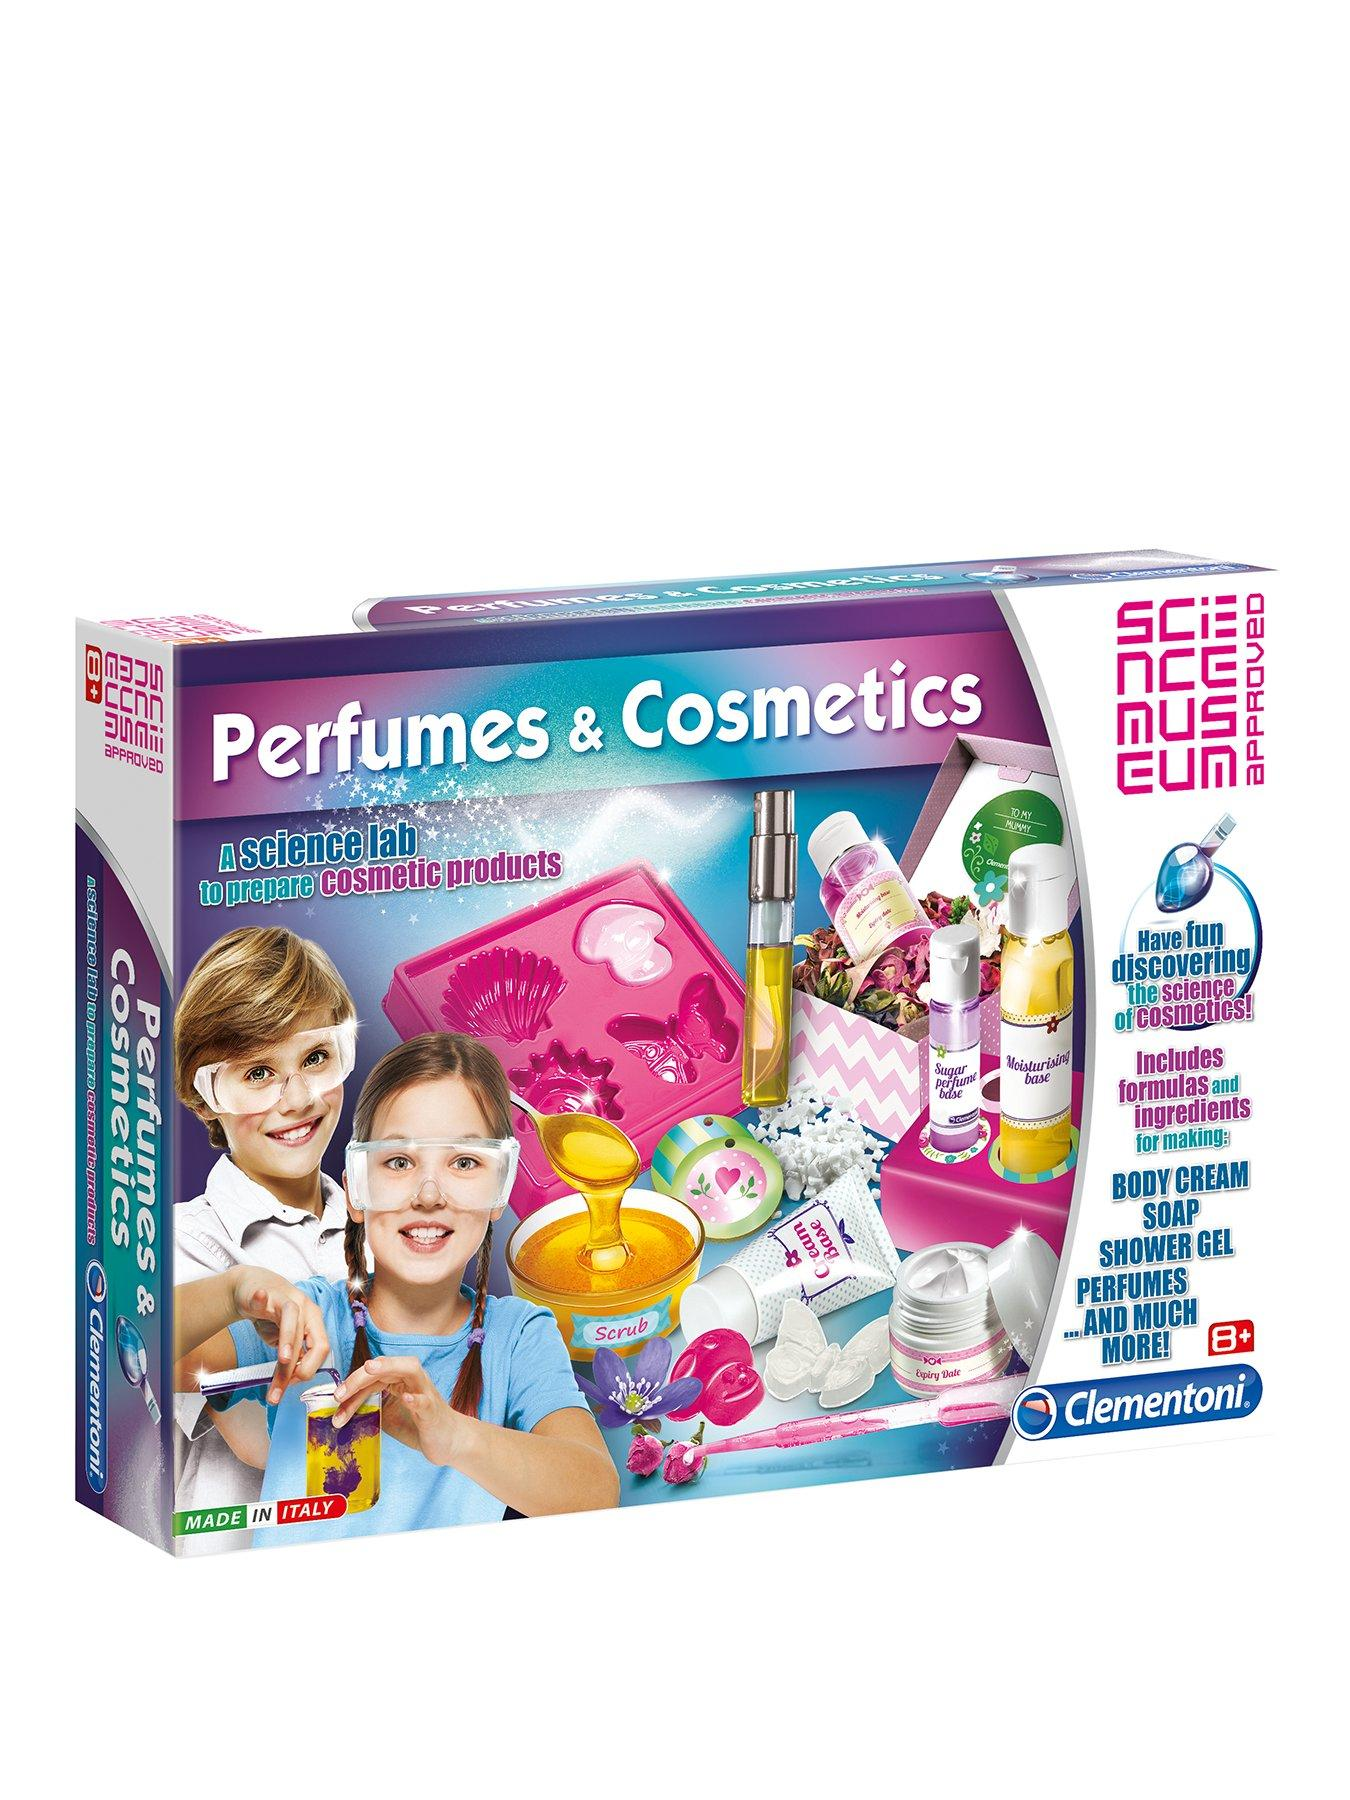 Compare prices for Clementoni Science Museum Perfumes and Cosmetics